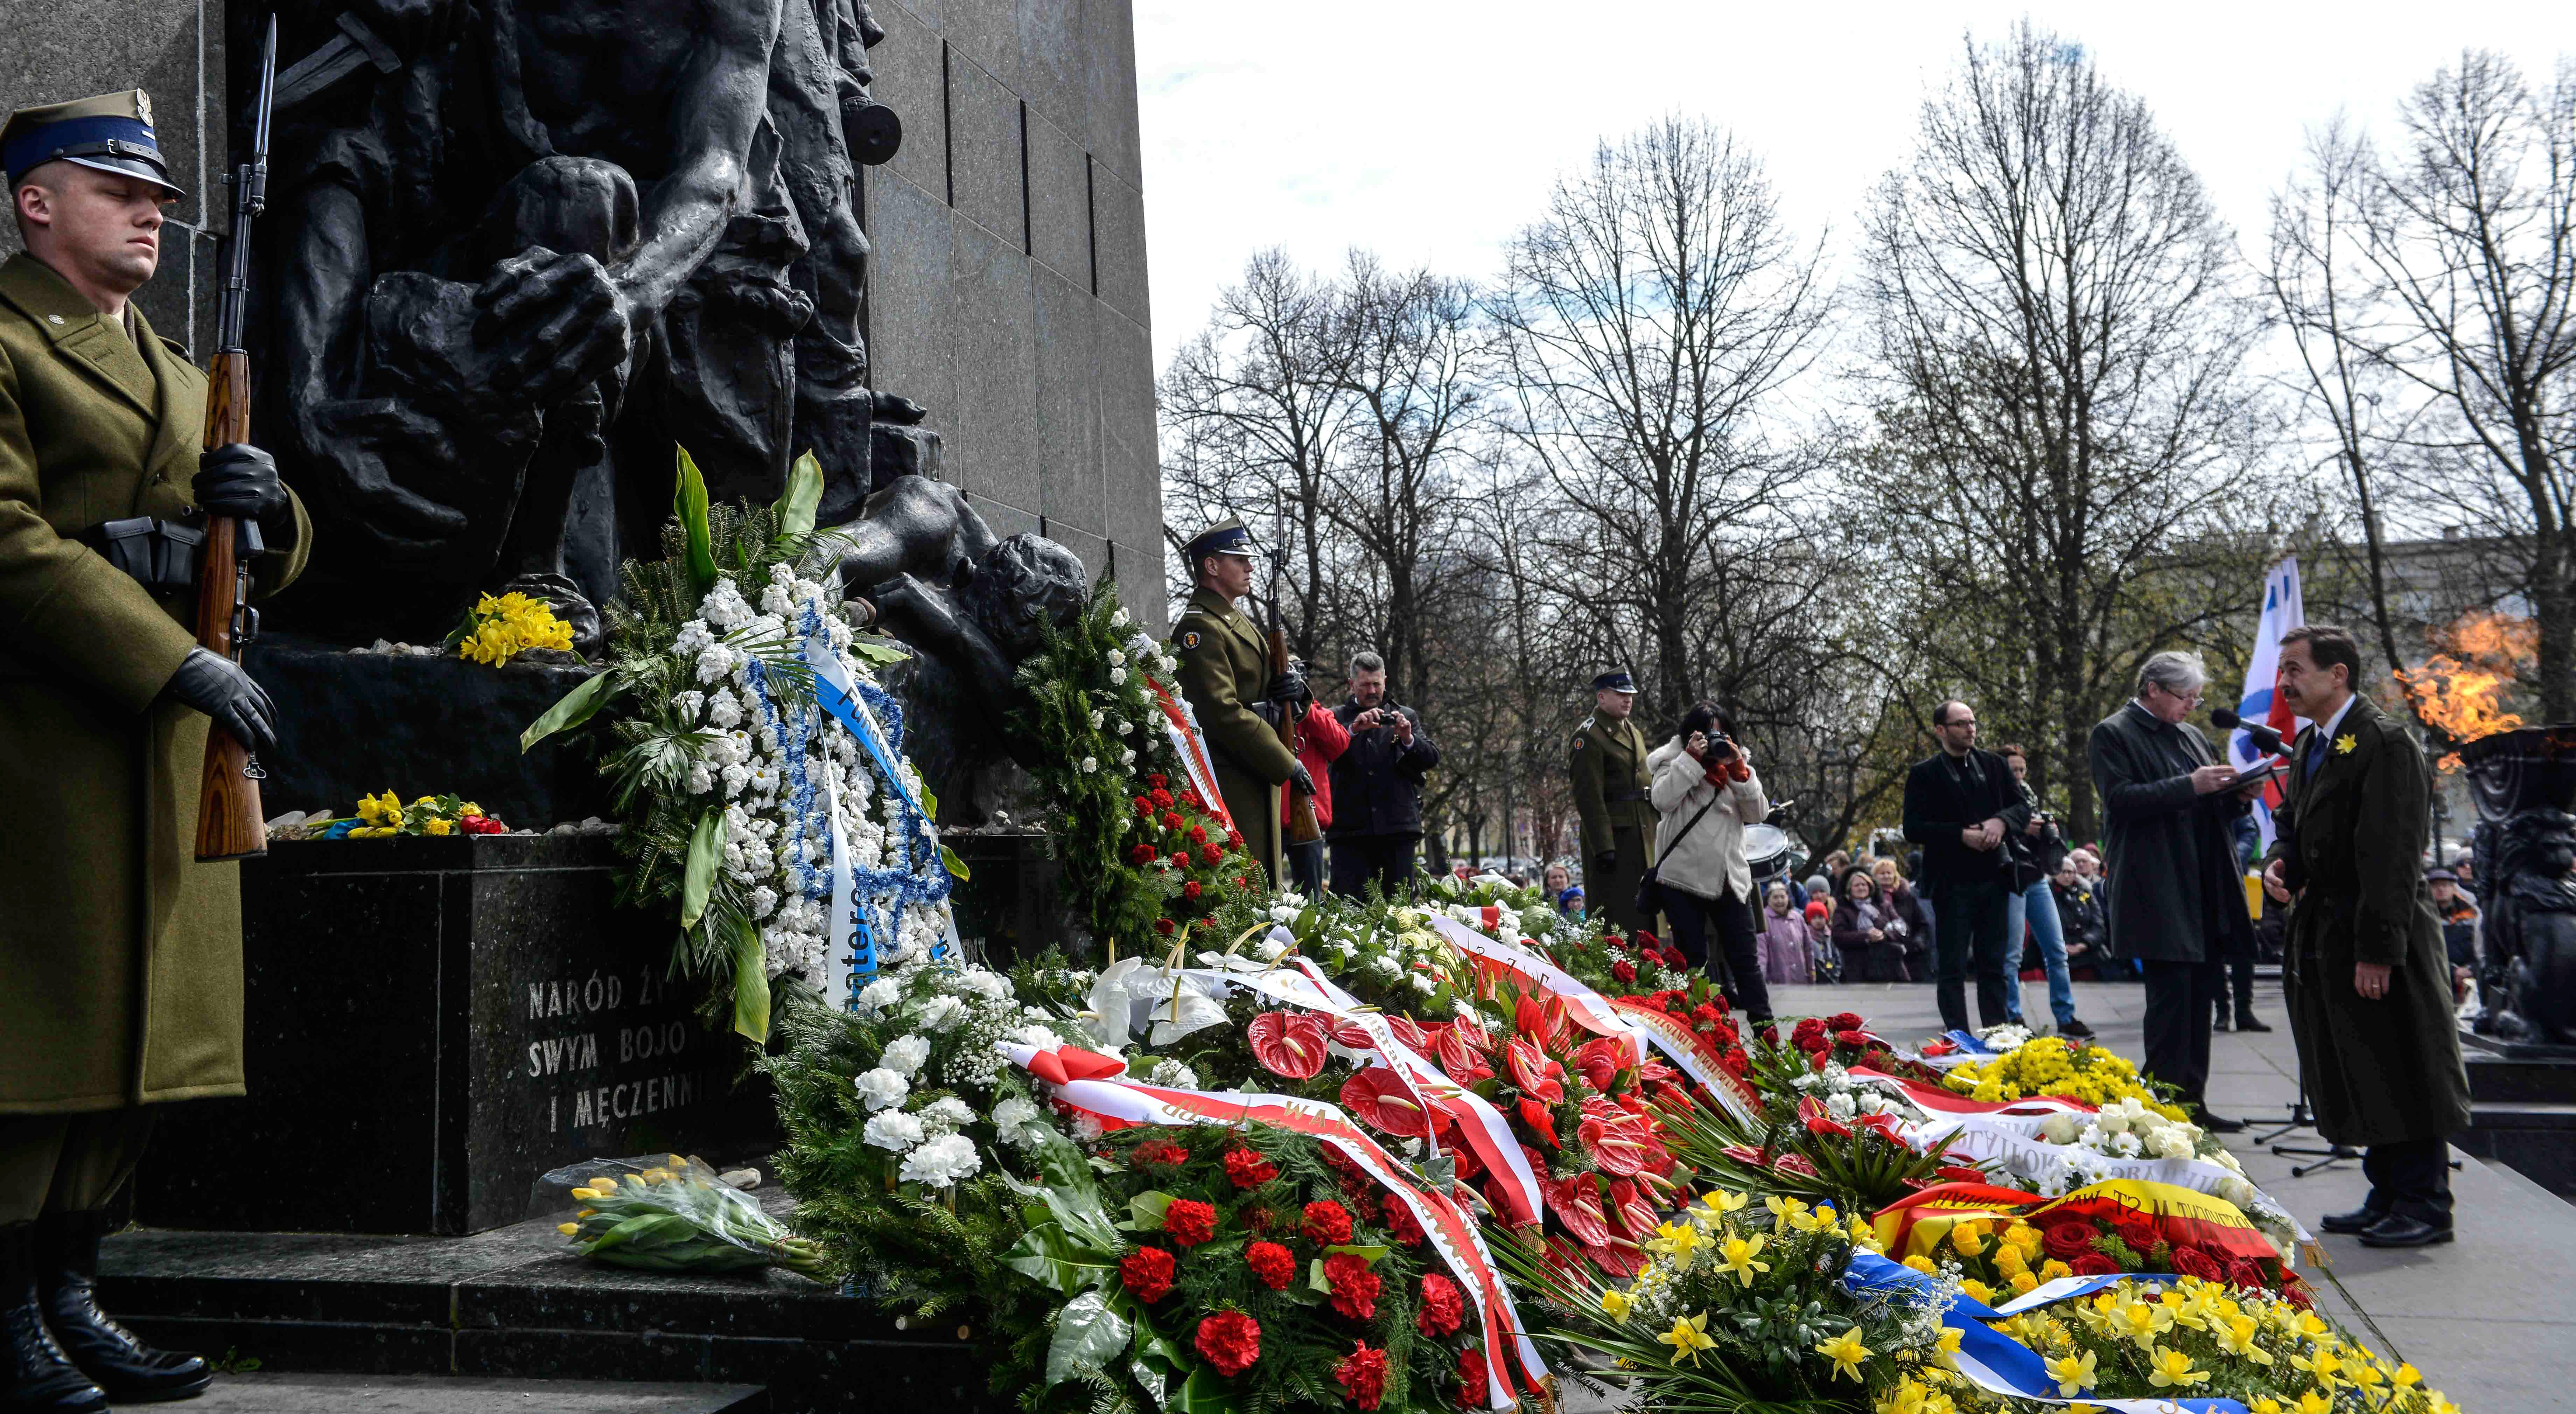 The U.S. ambassador to Poland, Stephen Mull, right, lays flowers at the Monument to the Ghetto Heroes in Warsaw on April, 19, 2015